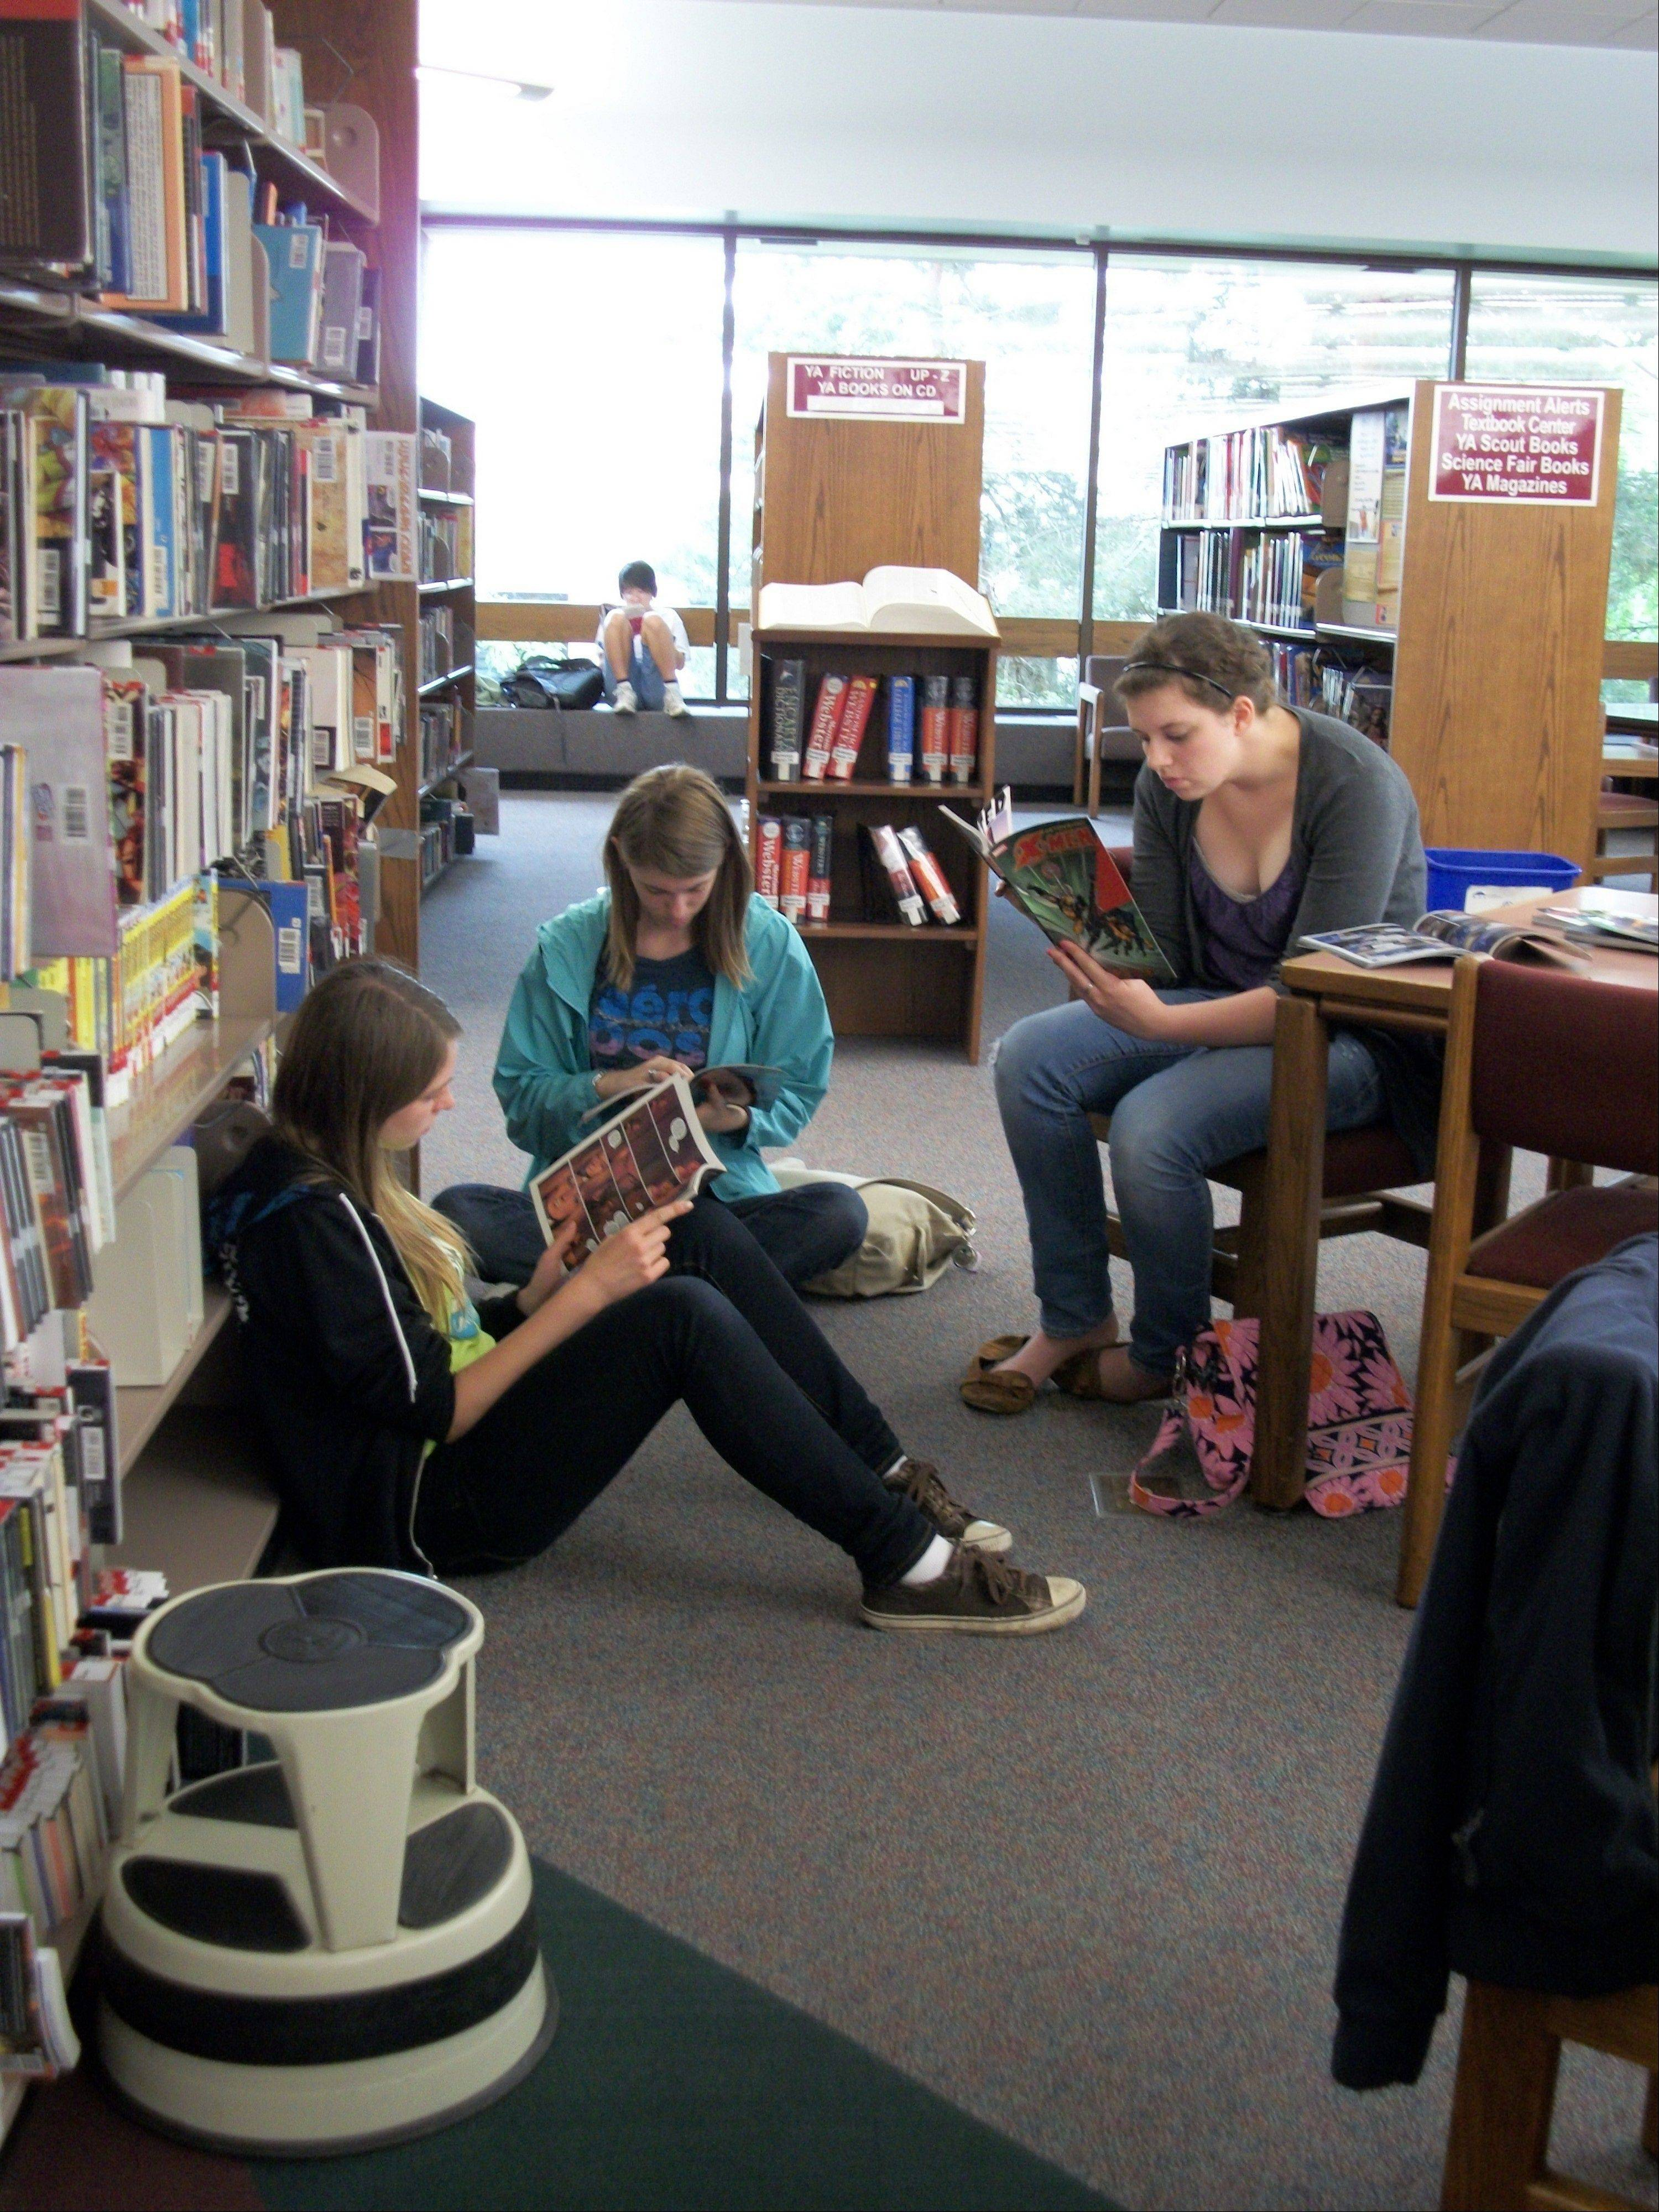 Naperville�s downtown Nichols Library will offer extended Sunday hours beginning Jan. 5 and continuing through May 18, officials said this week. The extended hours then will resume Sept. 7.